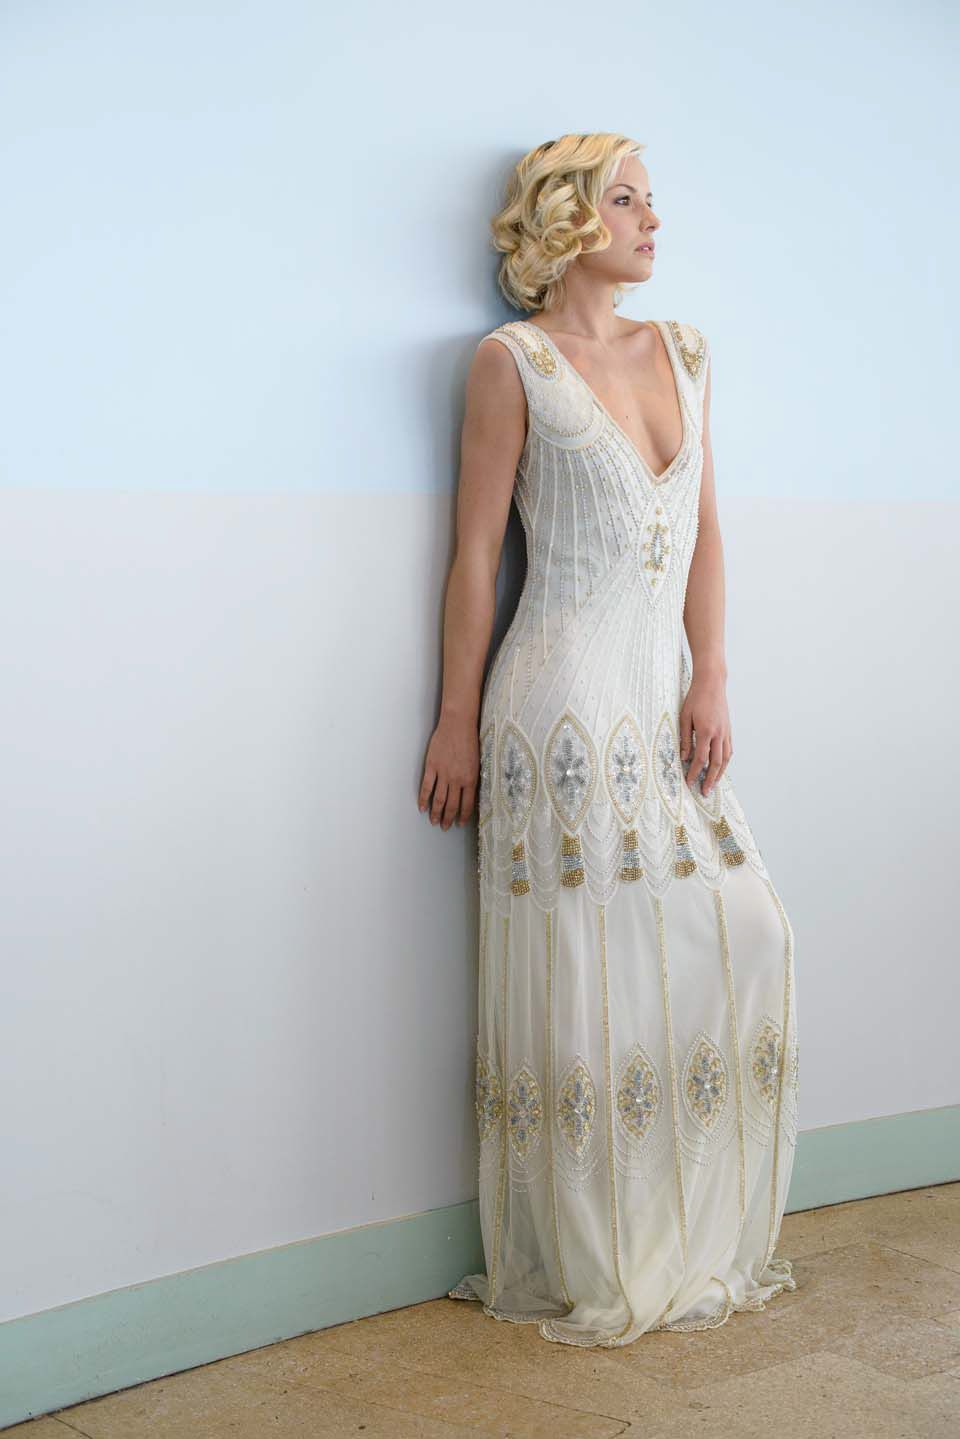 wedding dress Vicky Rowe dresses A Debut Collection of s and s Inspired Heirloom Style Wedding Dresses